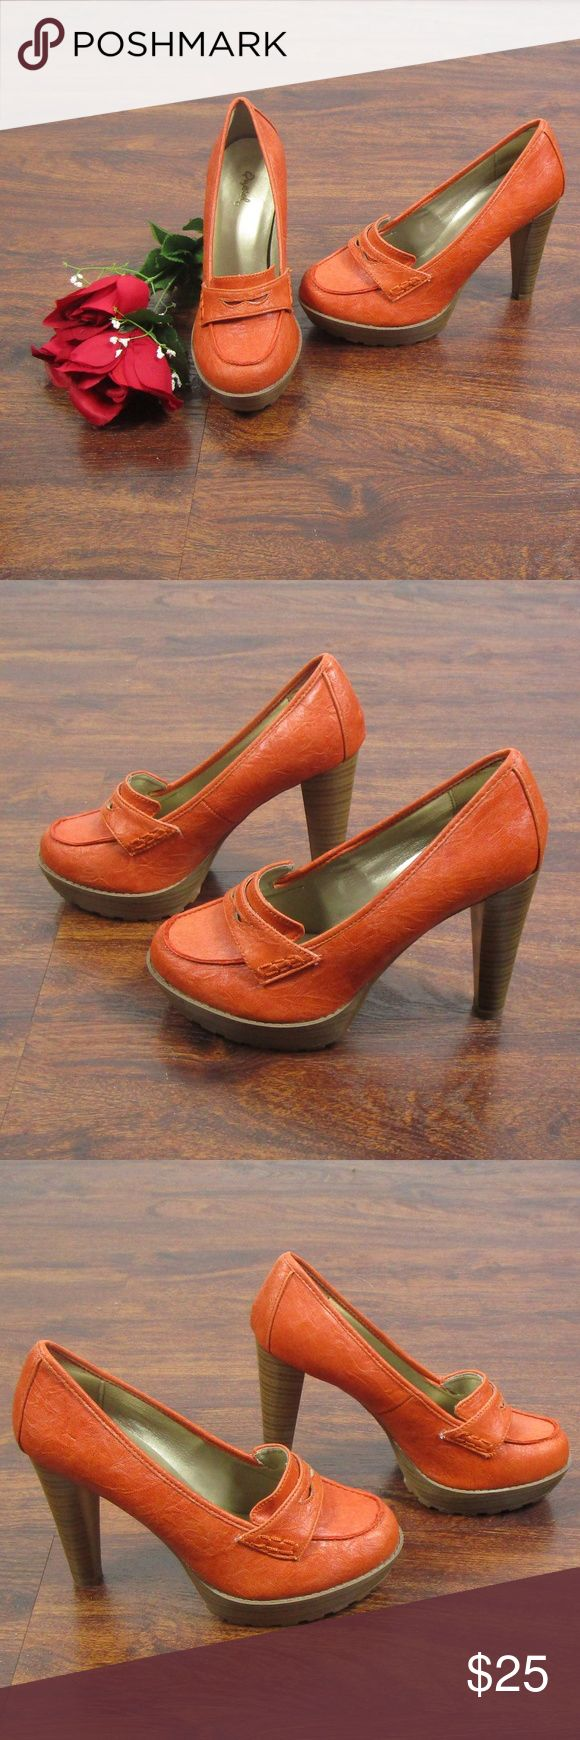 Qupid Brand Orange & Tan High Heel Loafers SZ 7.5 These beautiful heels are in excellent condition! There is a blue scuff on the outside of the right shoe (See picture ). As always offers and bundles are welcome. Feel free to add one or more items to a bundle for a private discount offer!!!  The approx. heel height is 4.5 inches  The approx. platform height is 1 inch Qupid Shoes Heels